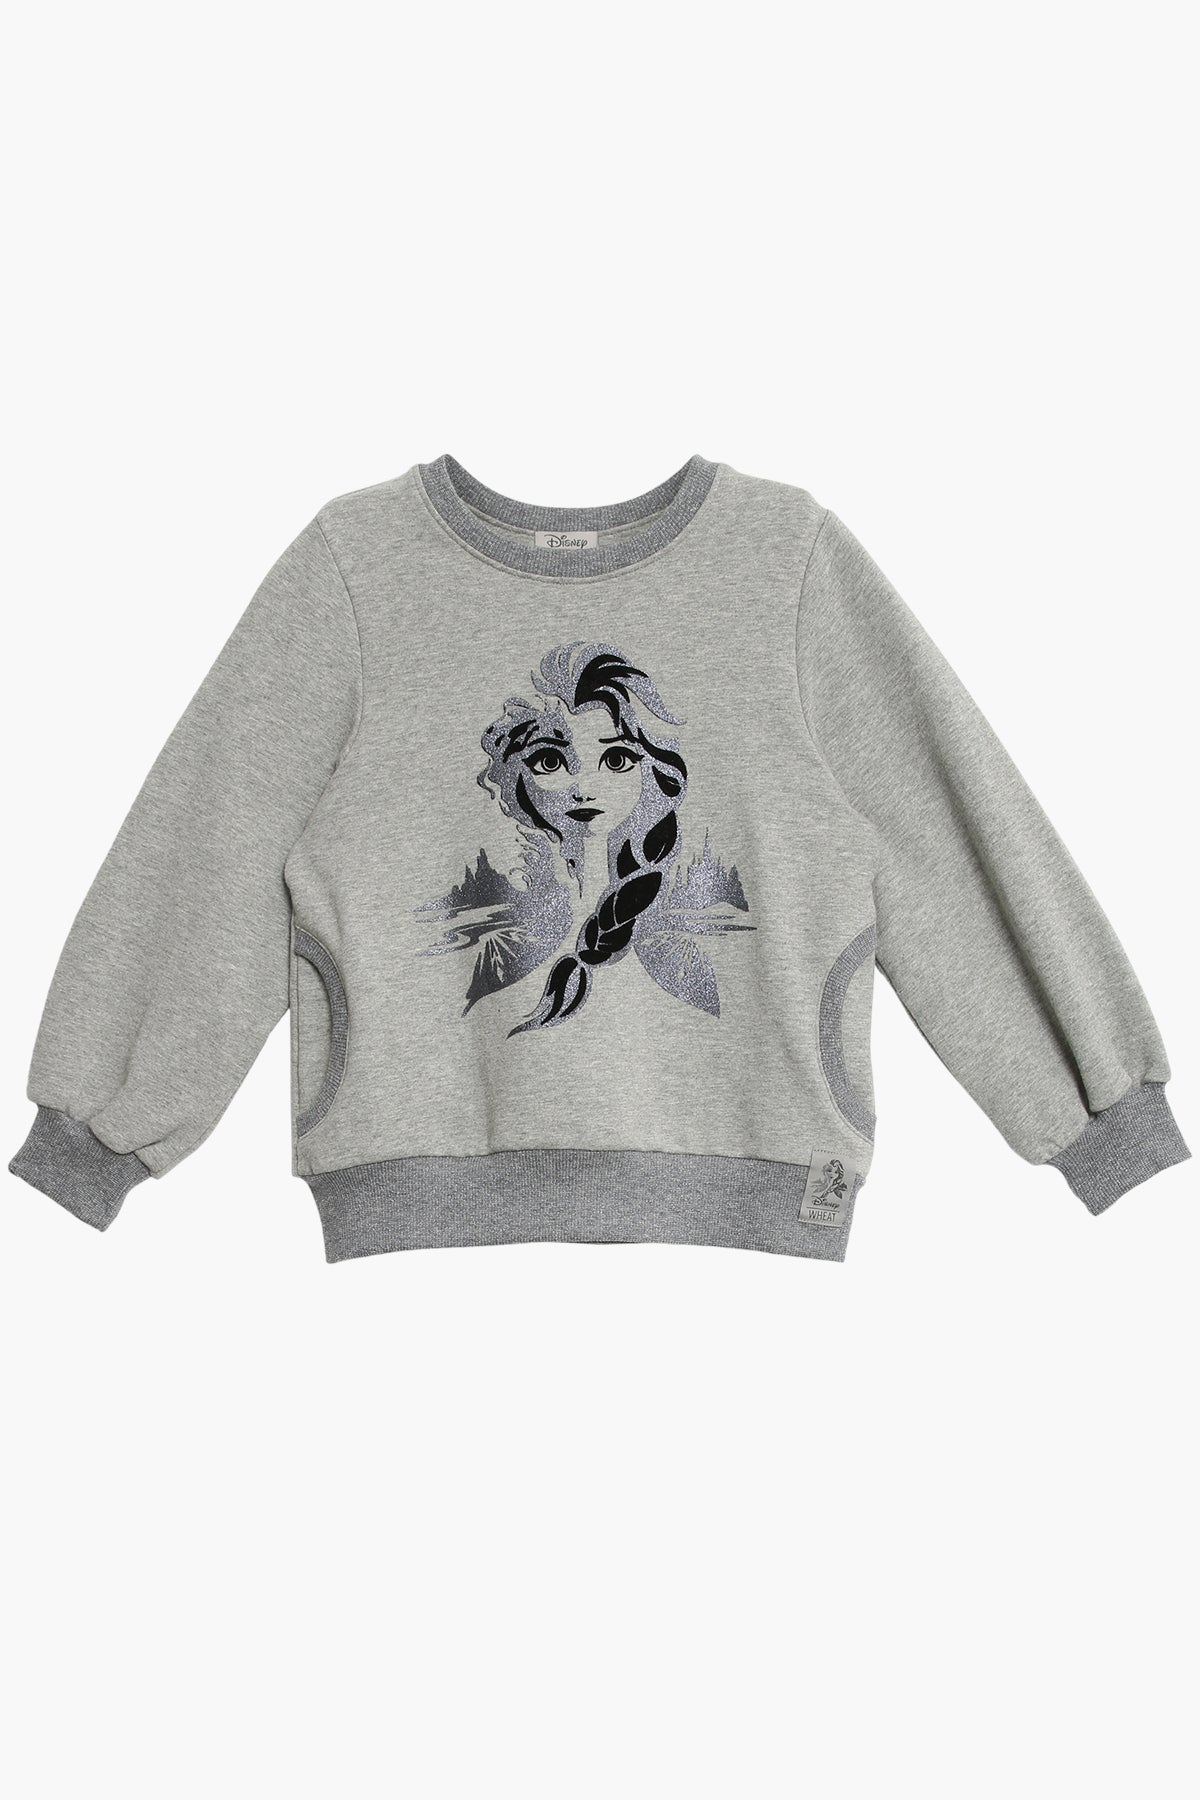 Wheat Disney Frozen Elsa Girls Sweatshirt